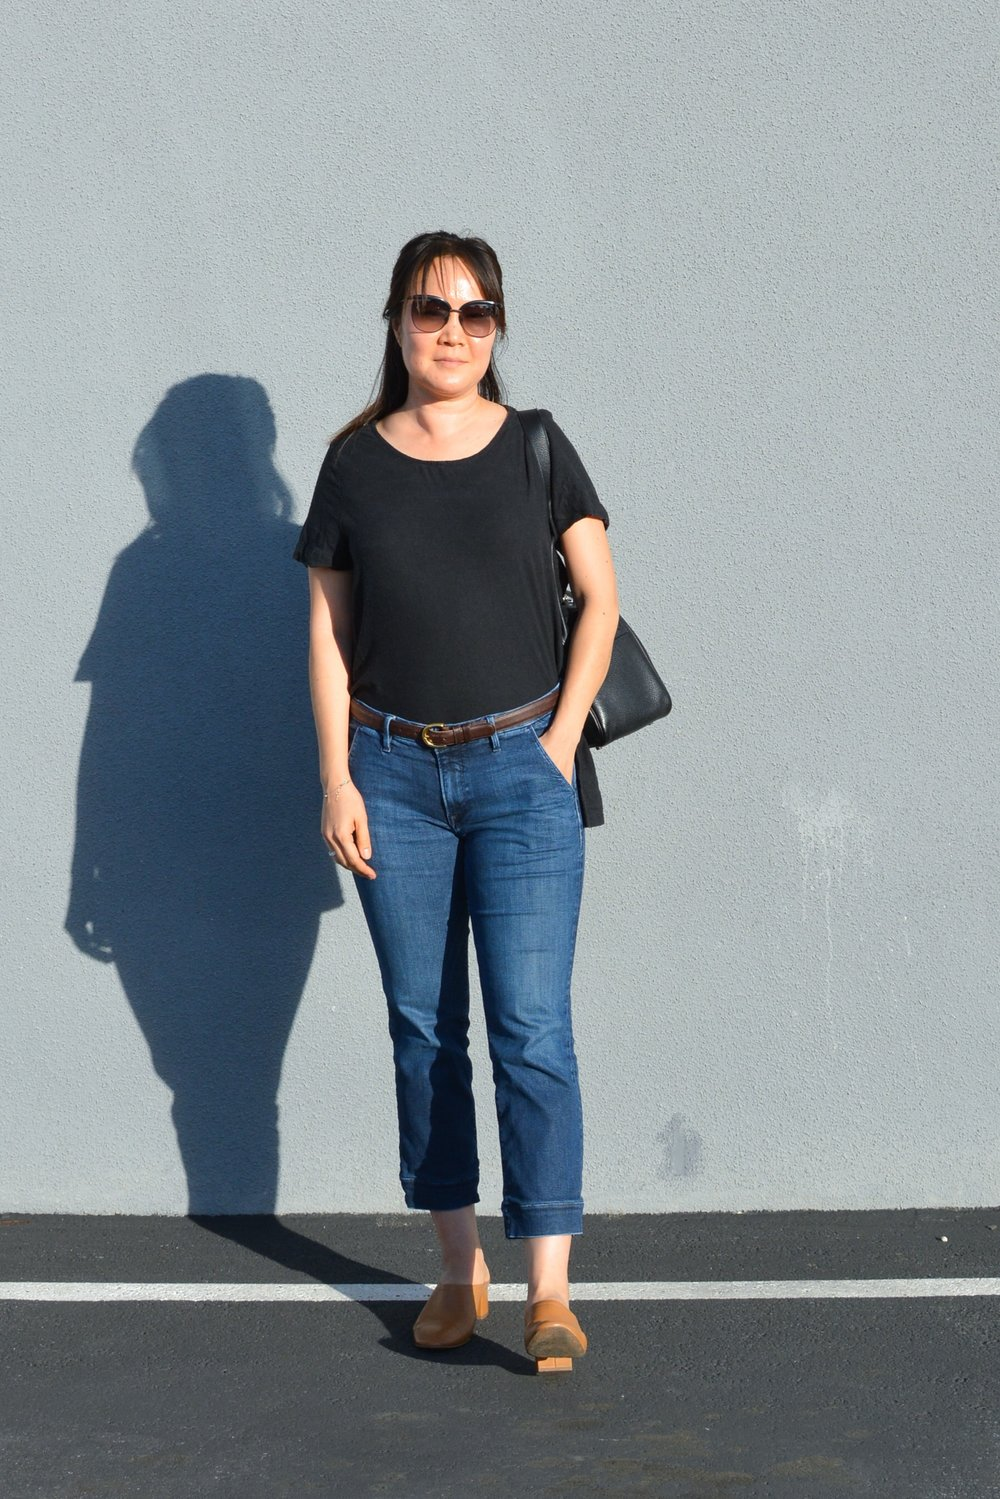 Jamie and the Jones Review The Stable Basic Split Tee Top  (4 of 6)-min.jpg